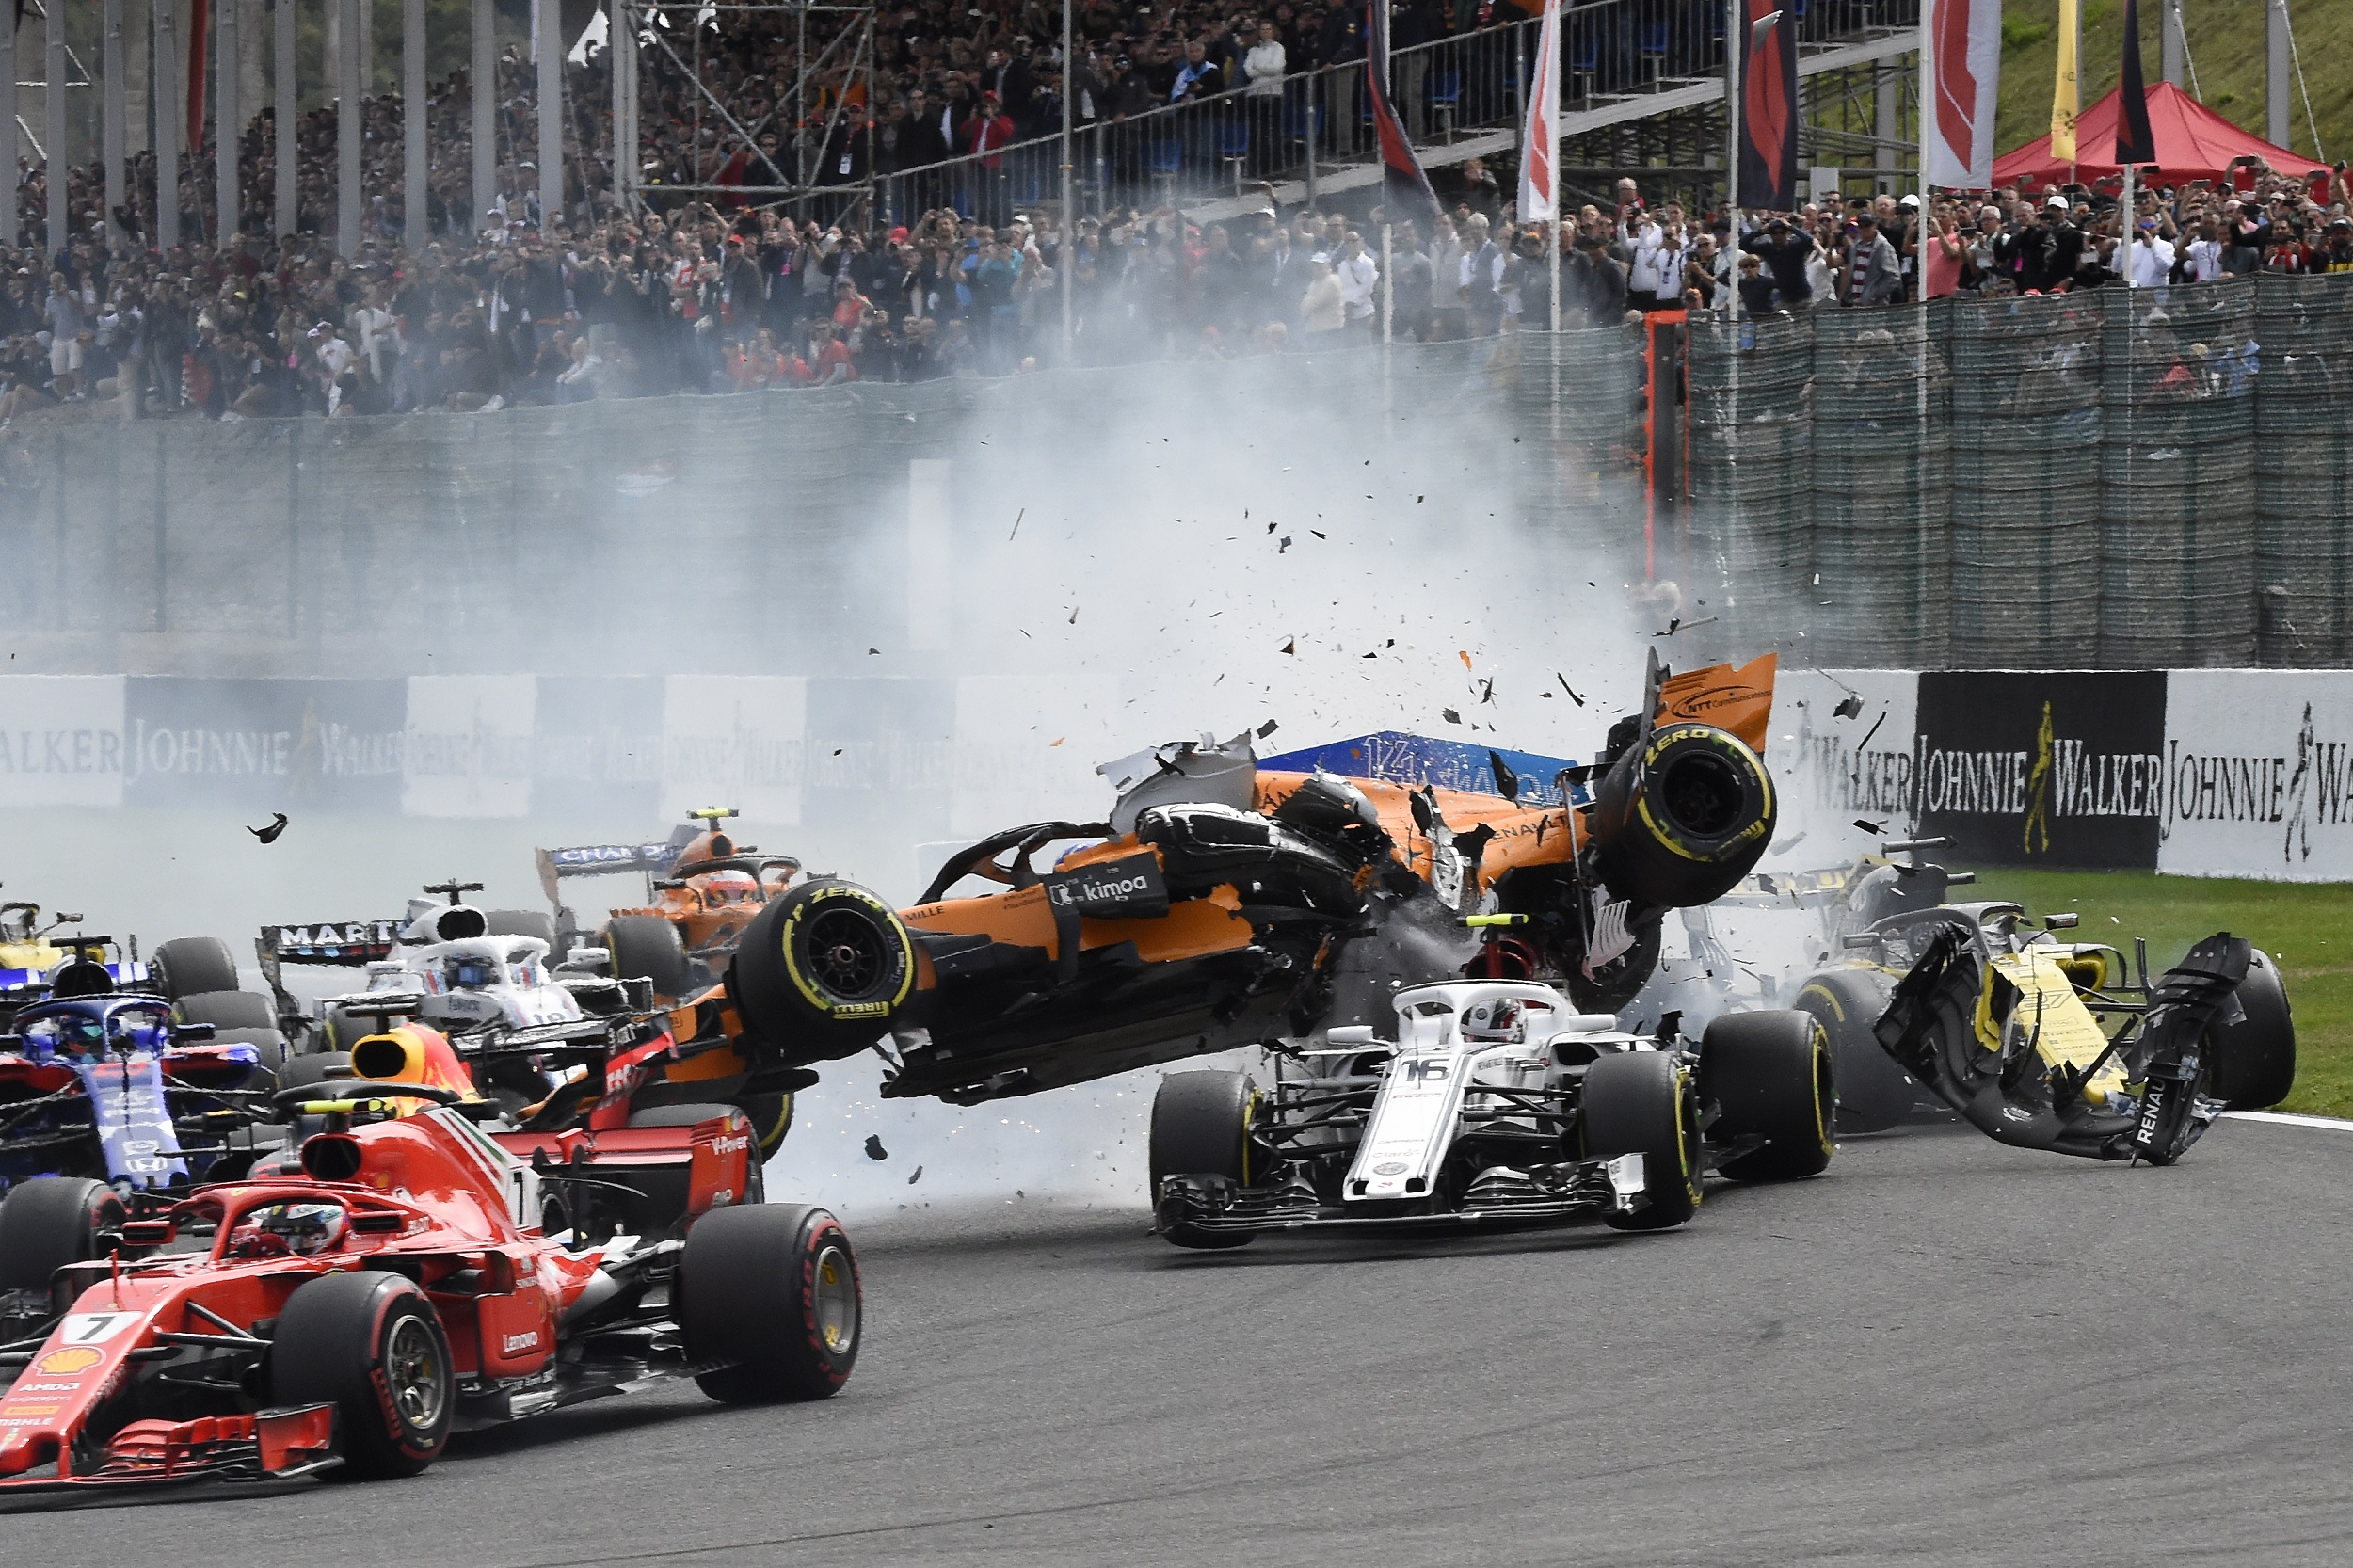 Alonso slams Hulkenberg, praises Halo after Spa crash